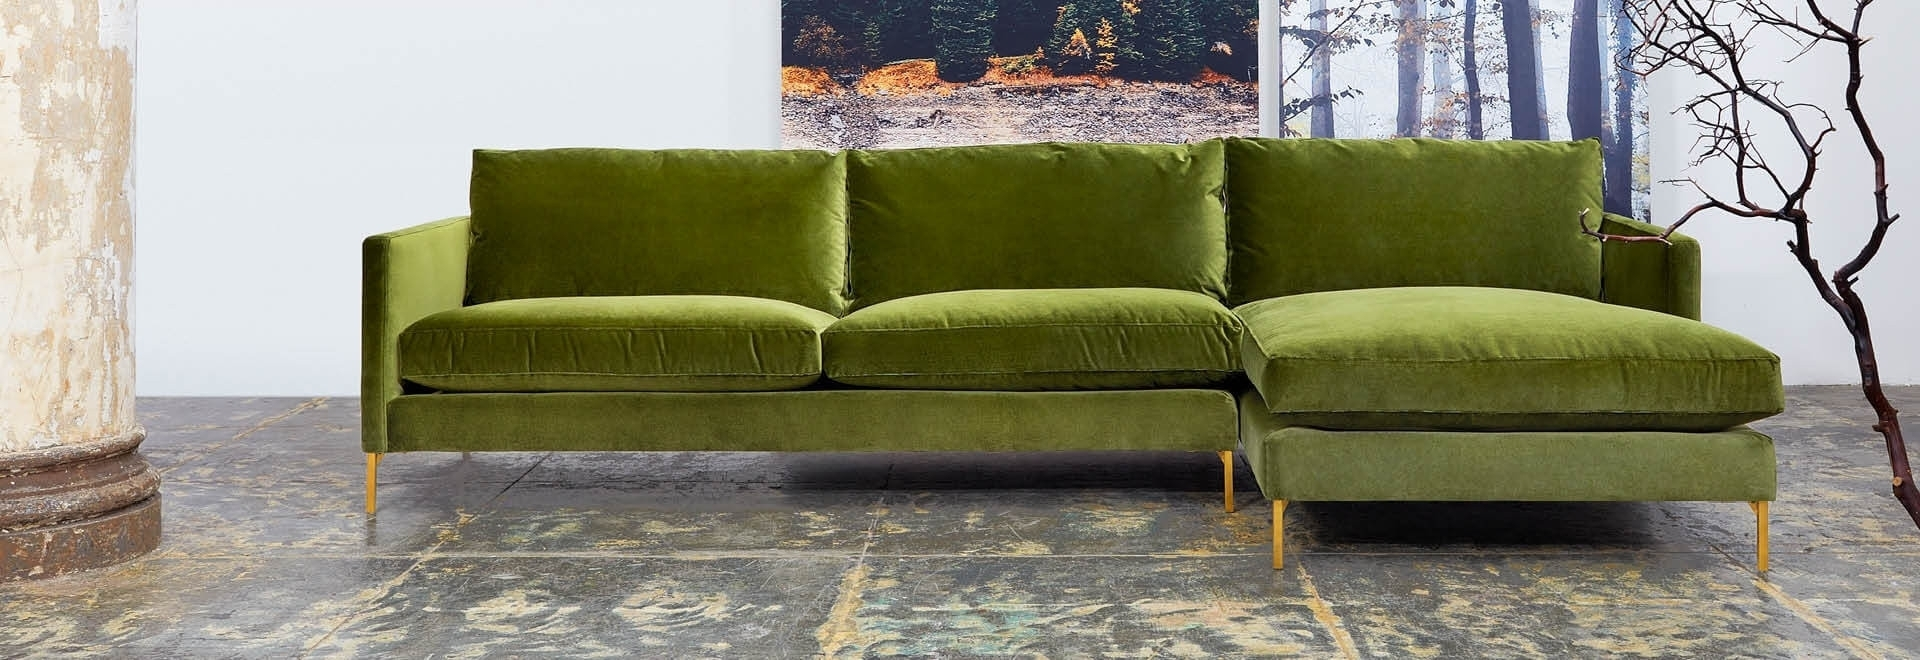 Modern Sectional Sofas For Nyc Apartments At Abc Home In Nyc Sectional Sofas (View 3 of 10)